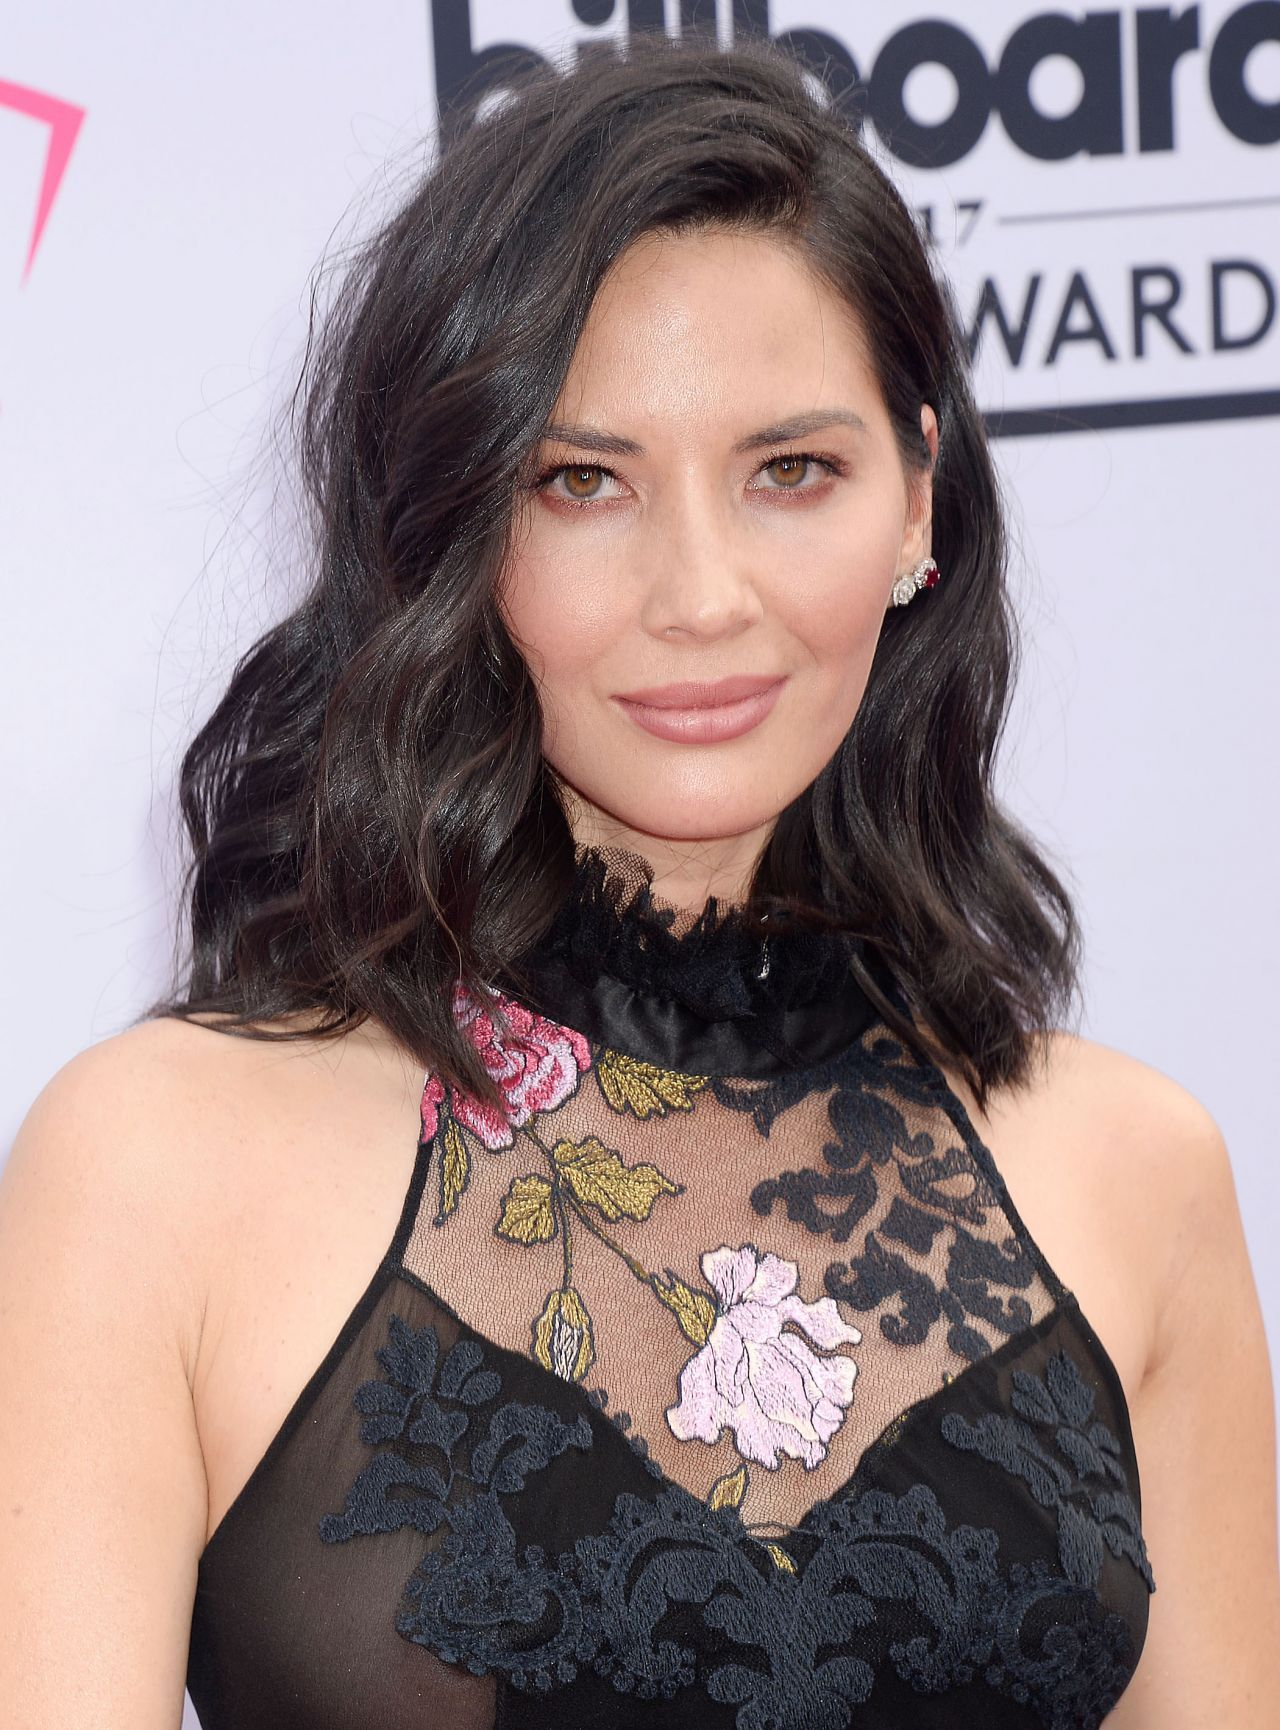 Pin By Angels On Hairology Olivia Munn Billboard Music Awards 2017 Hollywood Celebrities